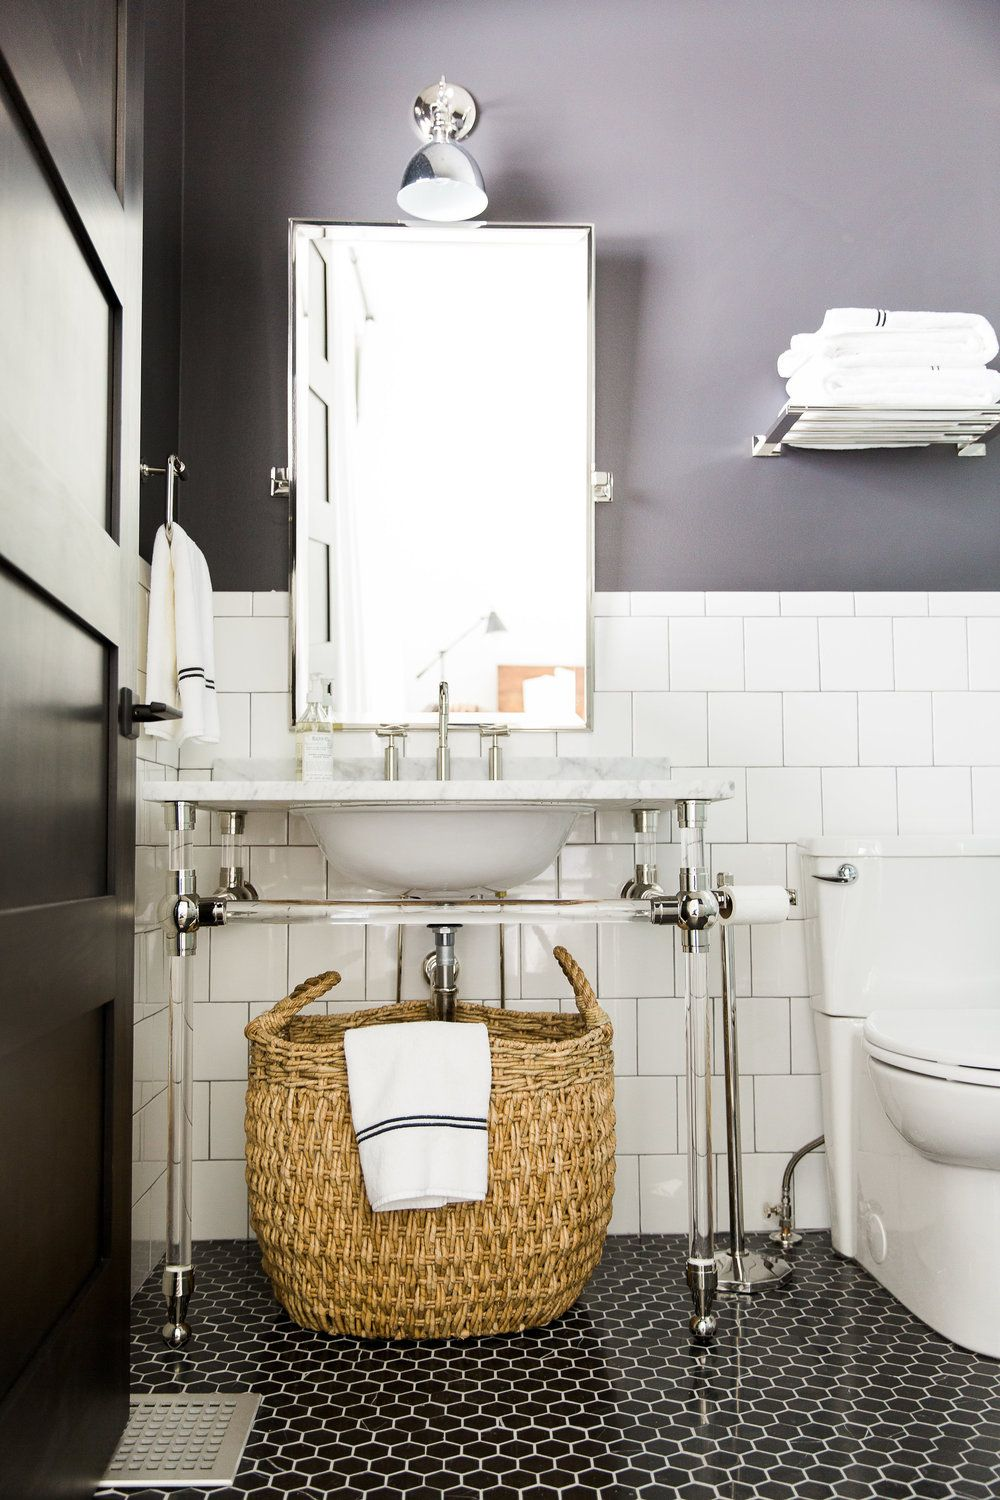 modern-mountain-home-tour-guest-wing-studio-mcgee-studio-and-black-black-fixtures-trends-modern-2018-bathrooms-black-fixtures-for-bathroom.jpg